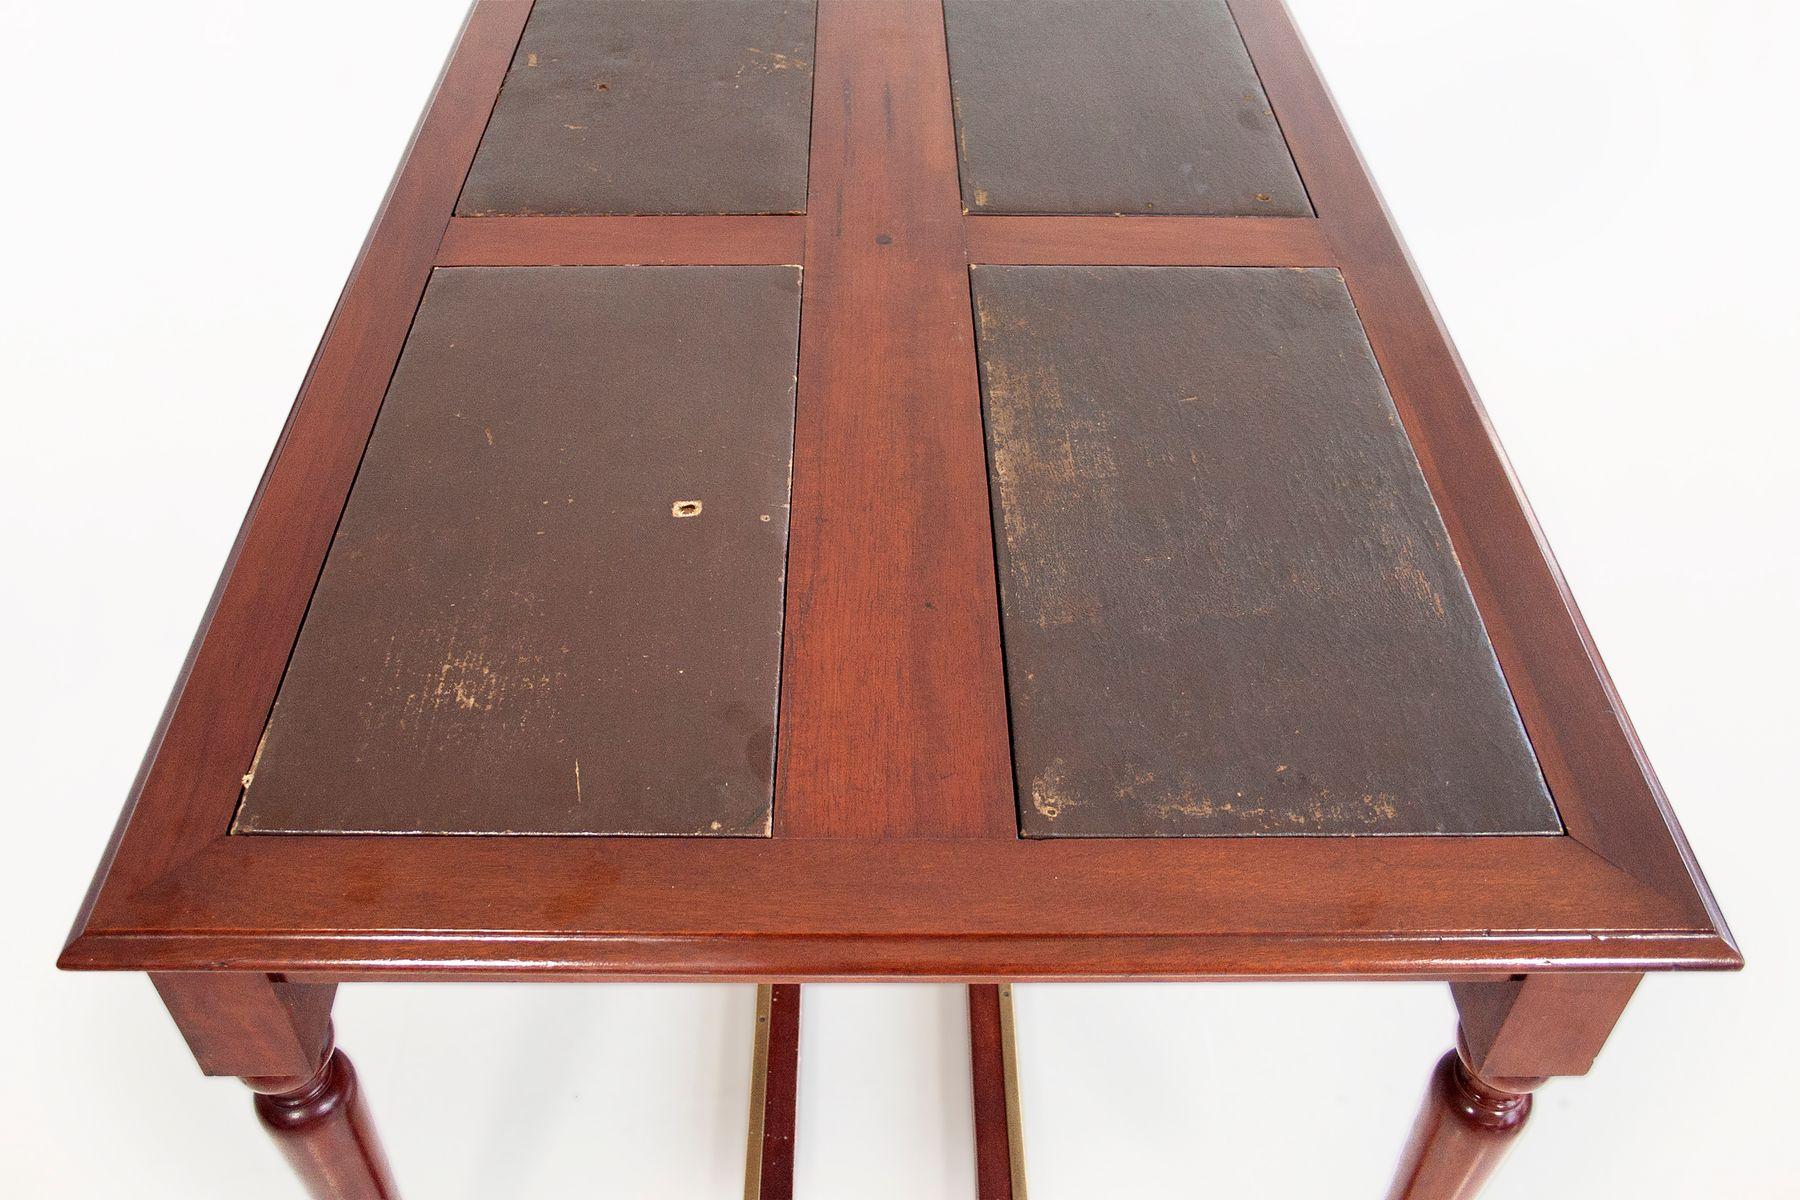 19th Century Mahogany Library Table for sale at Pamono